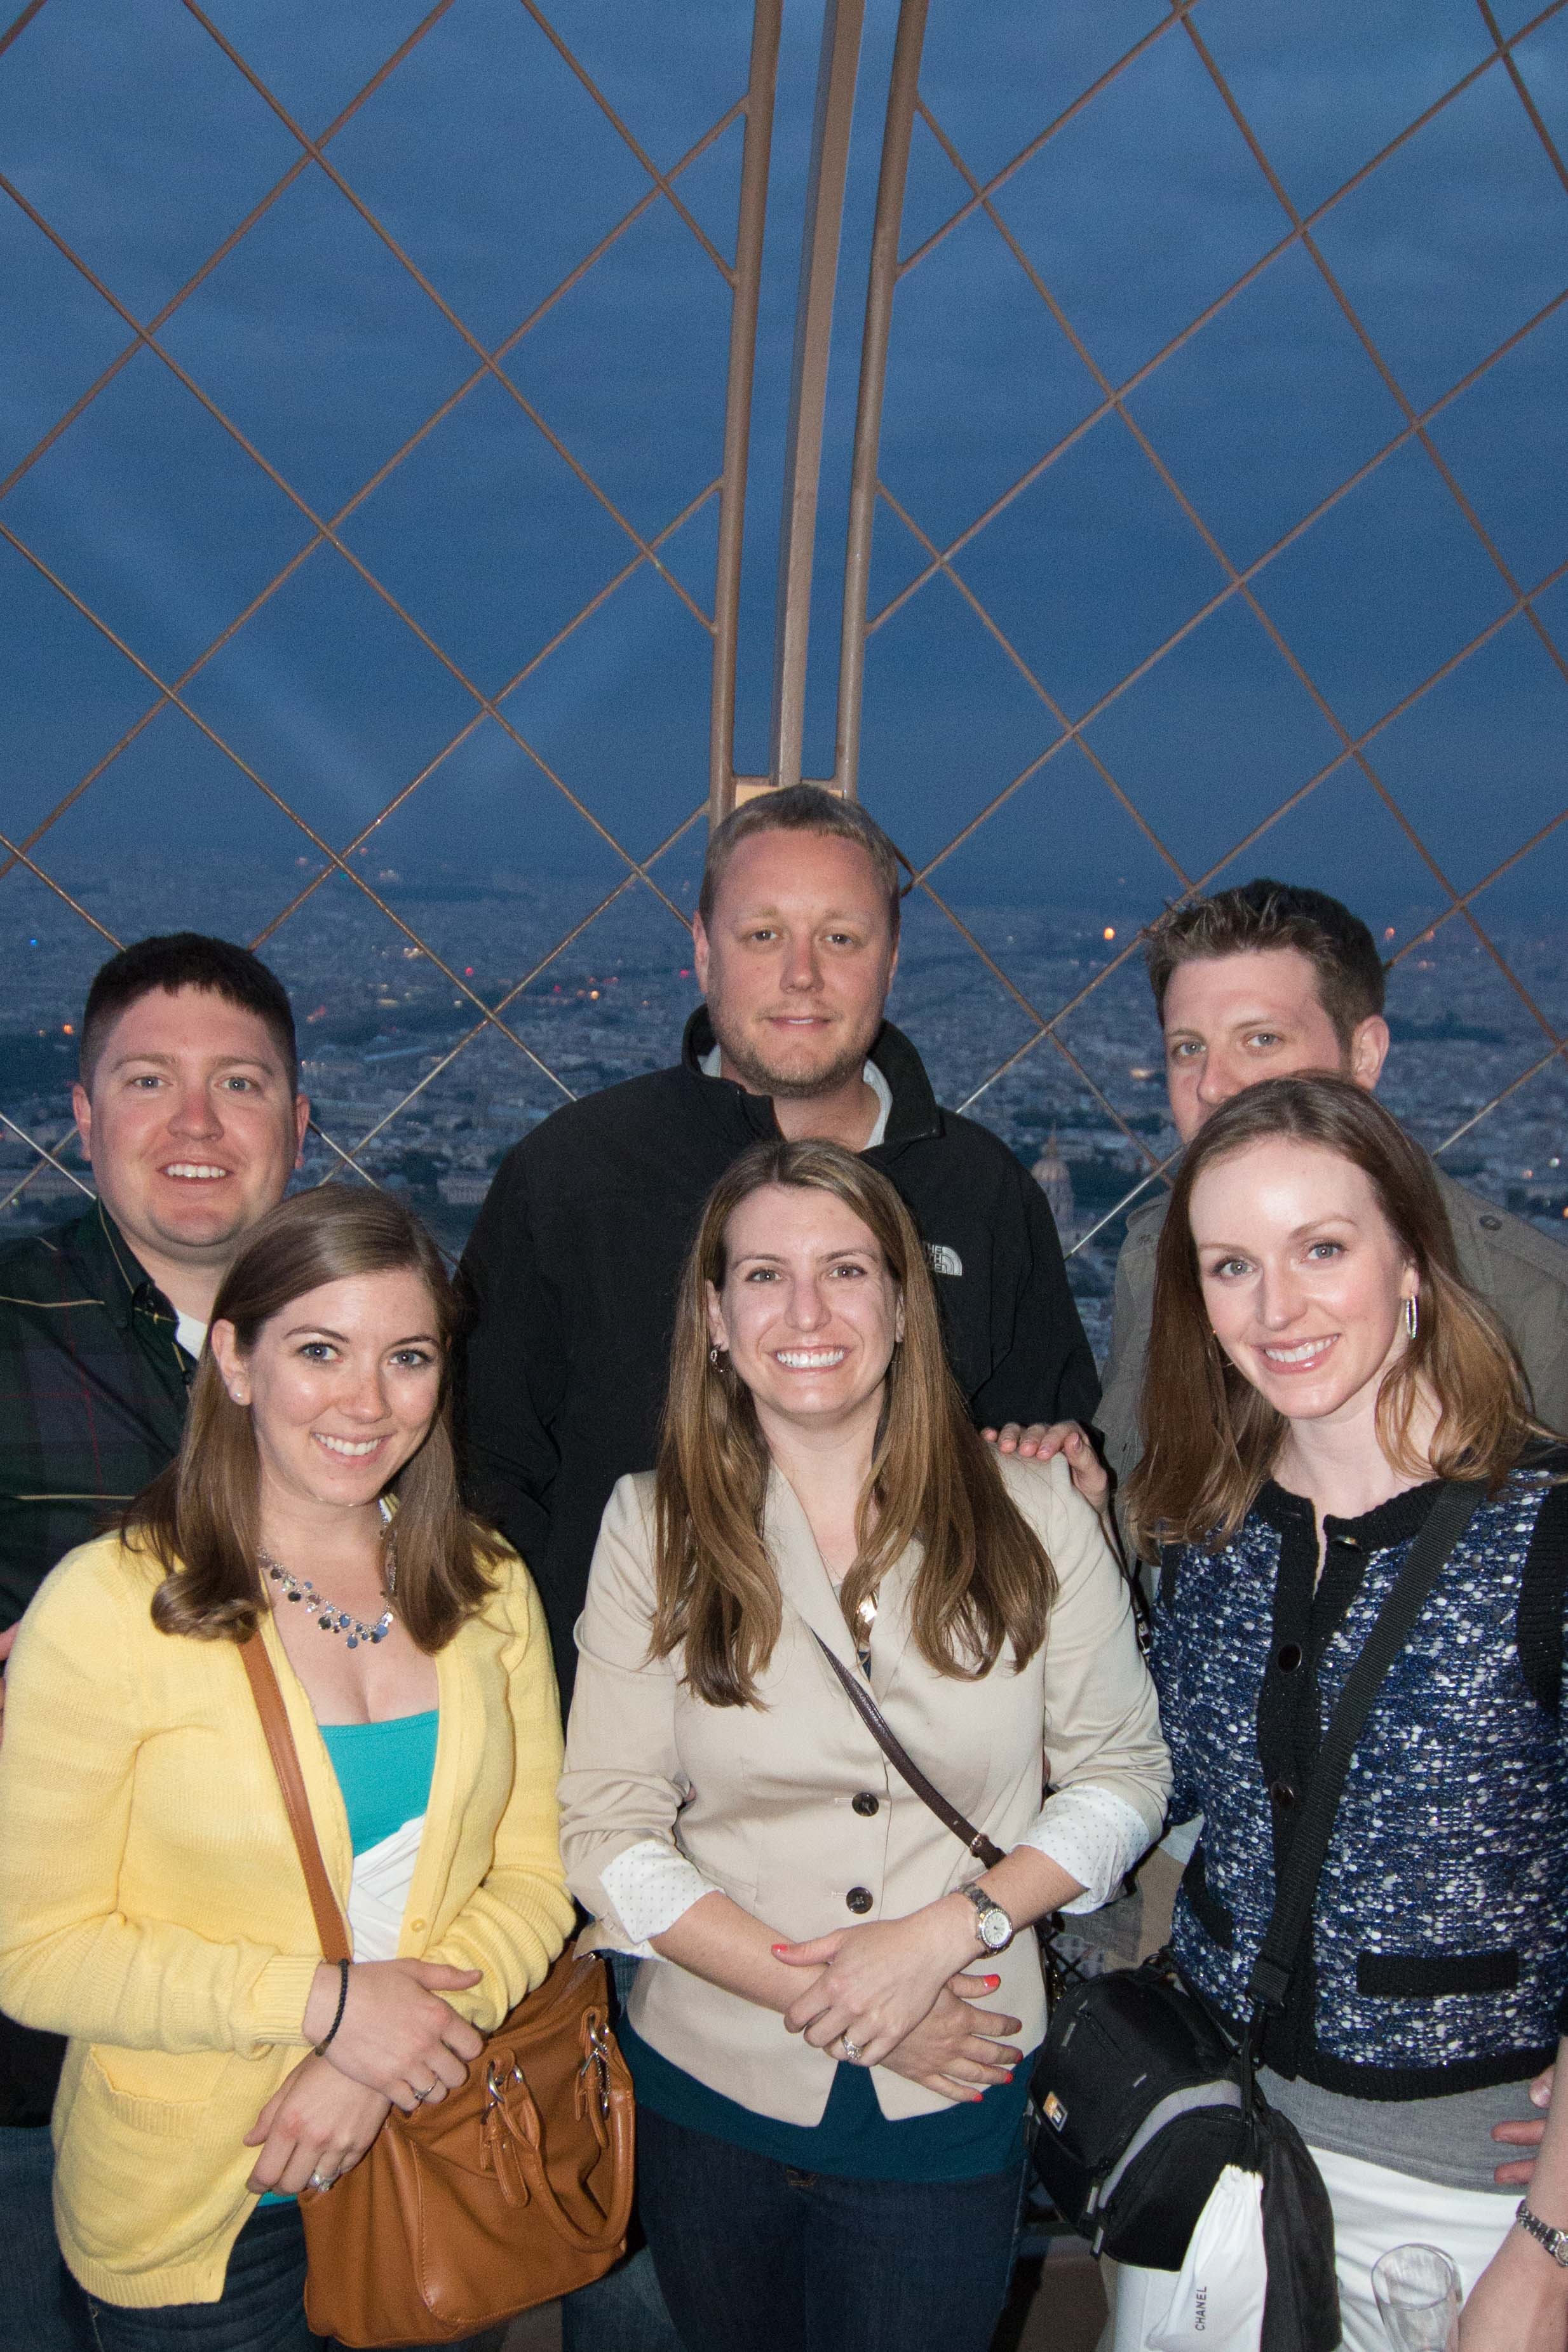 Group shot from the top!